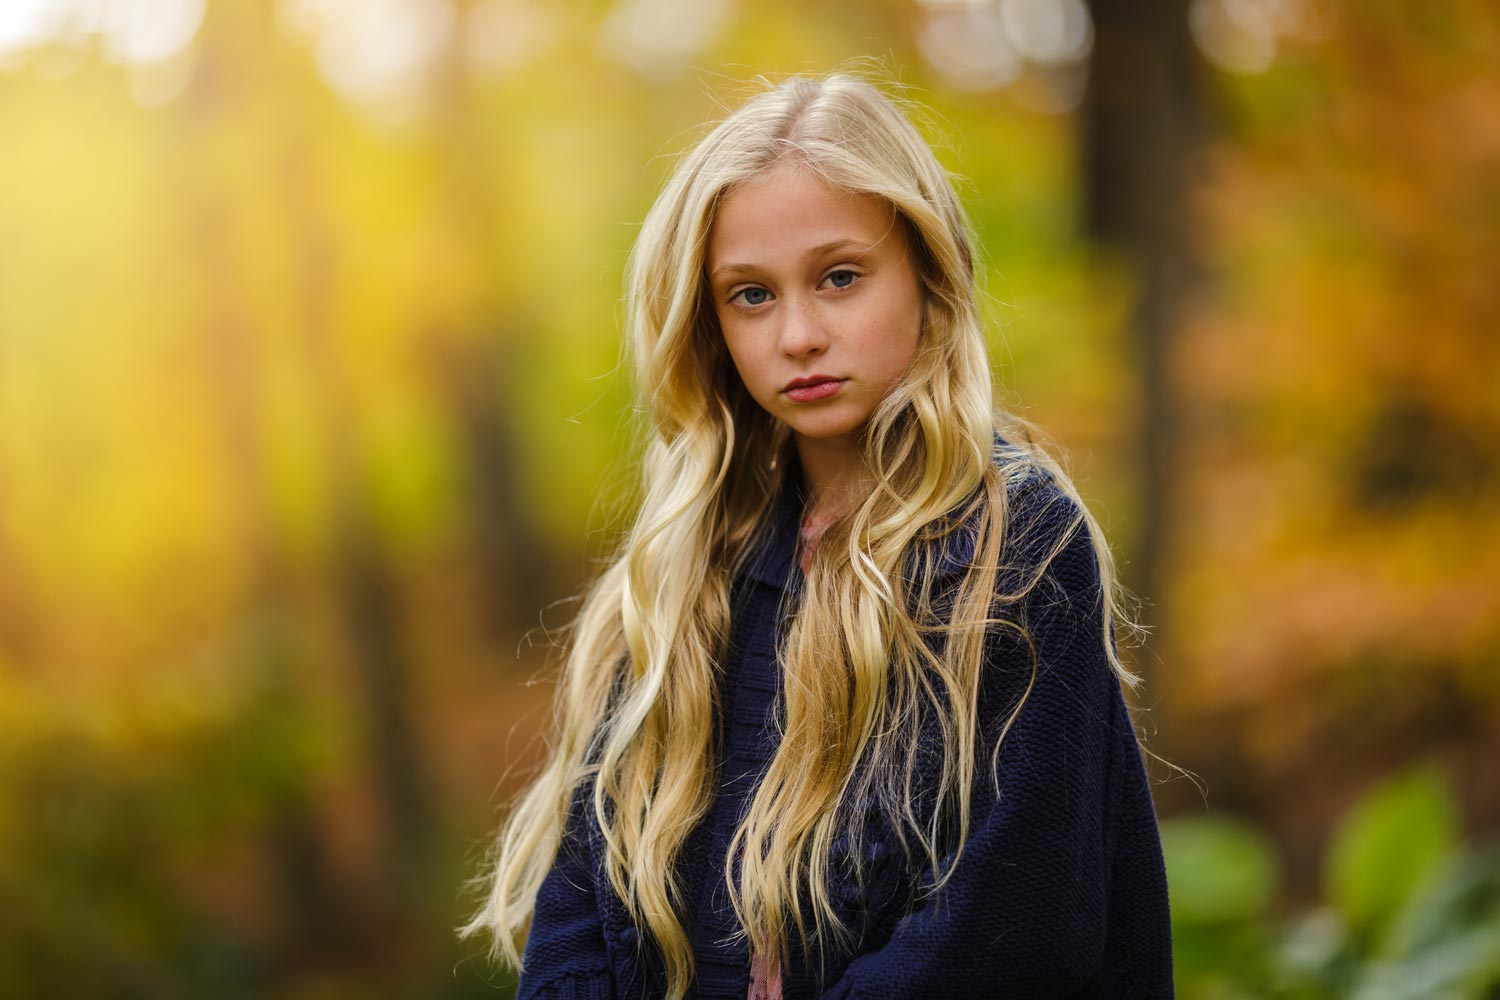 outdoor picture of a young girl